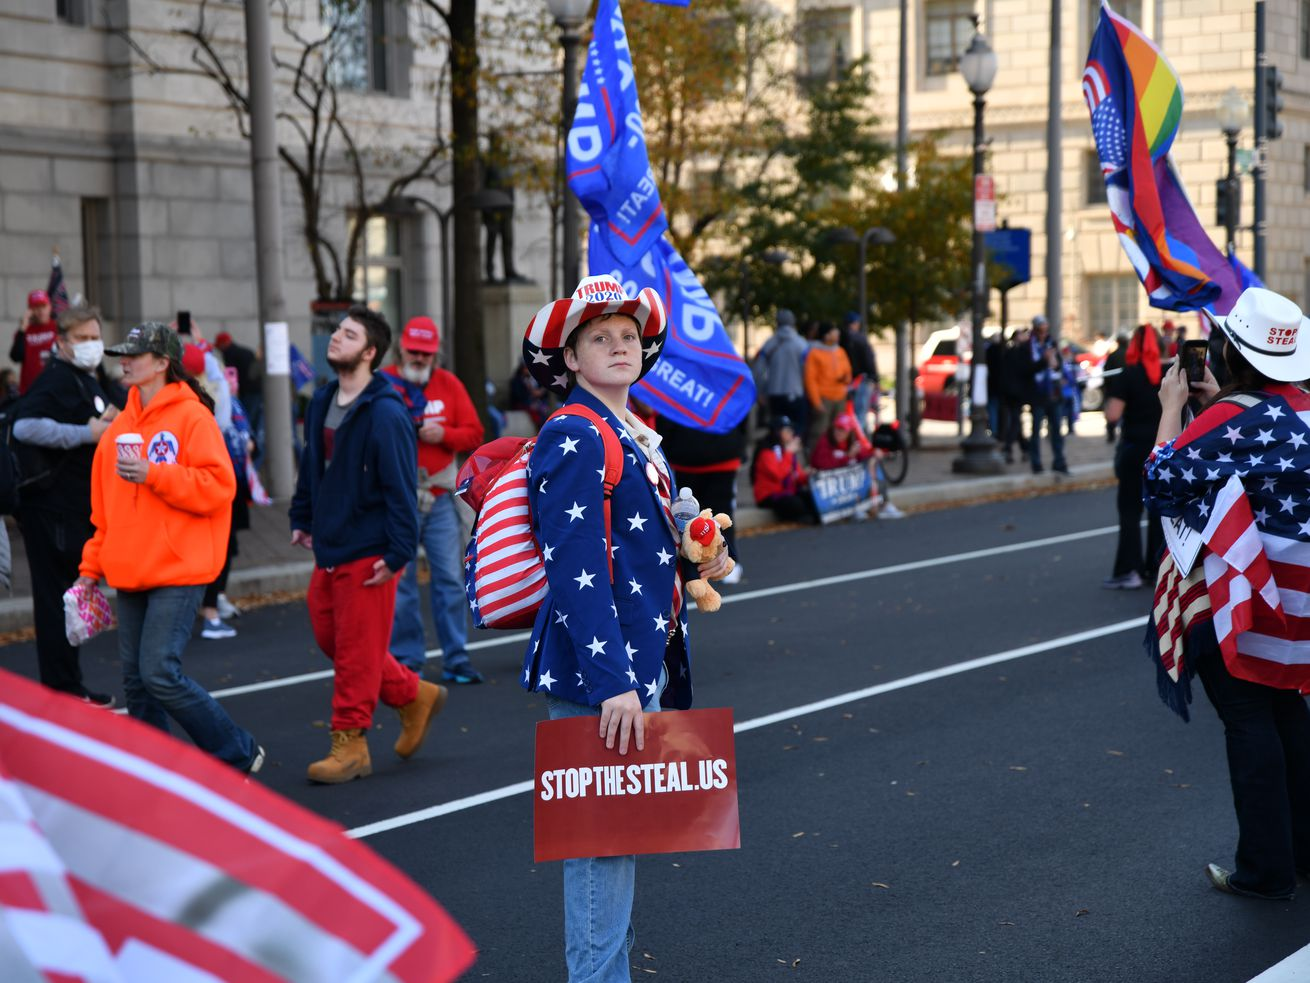 People dressed red, white, and blue wave flags and carry signs at a pro-Trump ''Stop The Steal'' conspiracy theory rally.